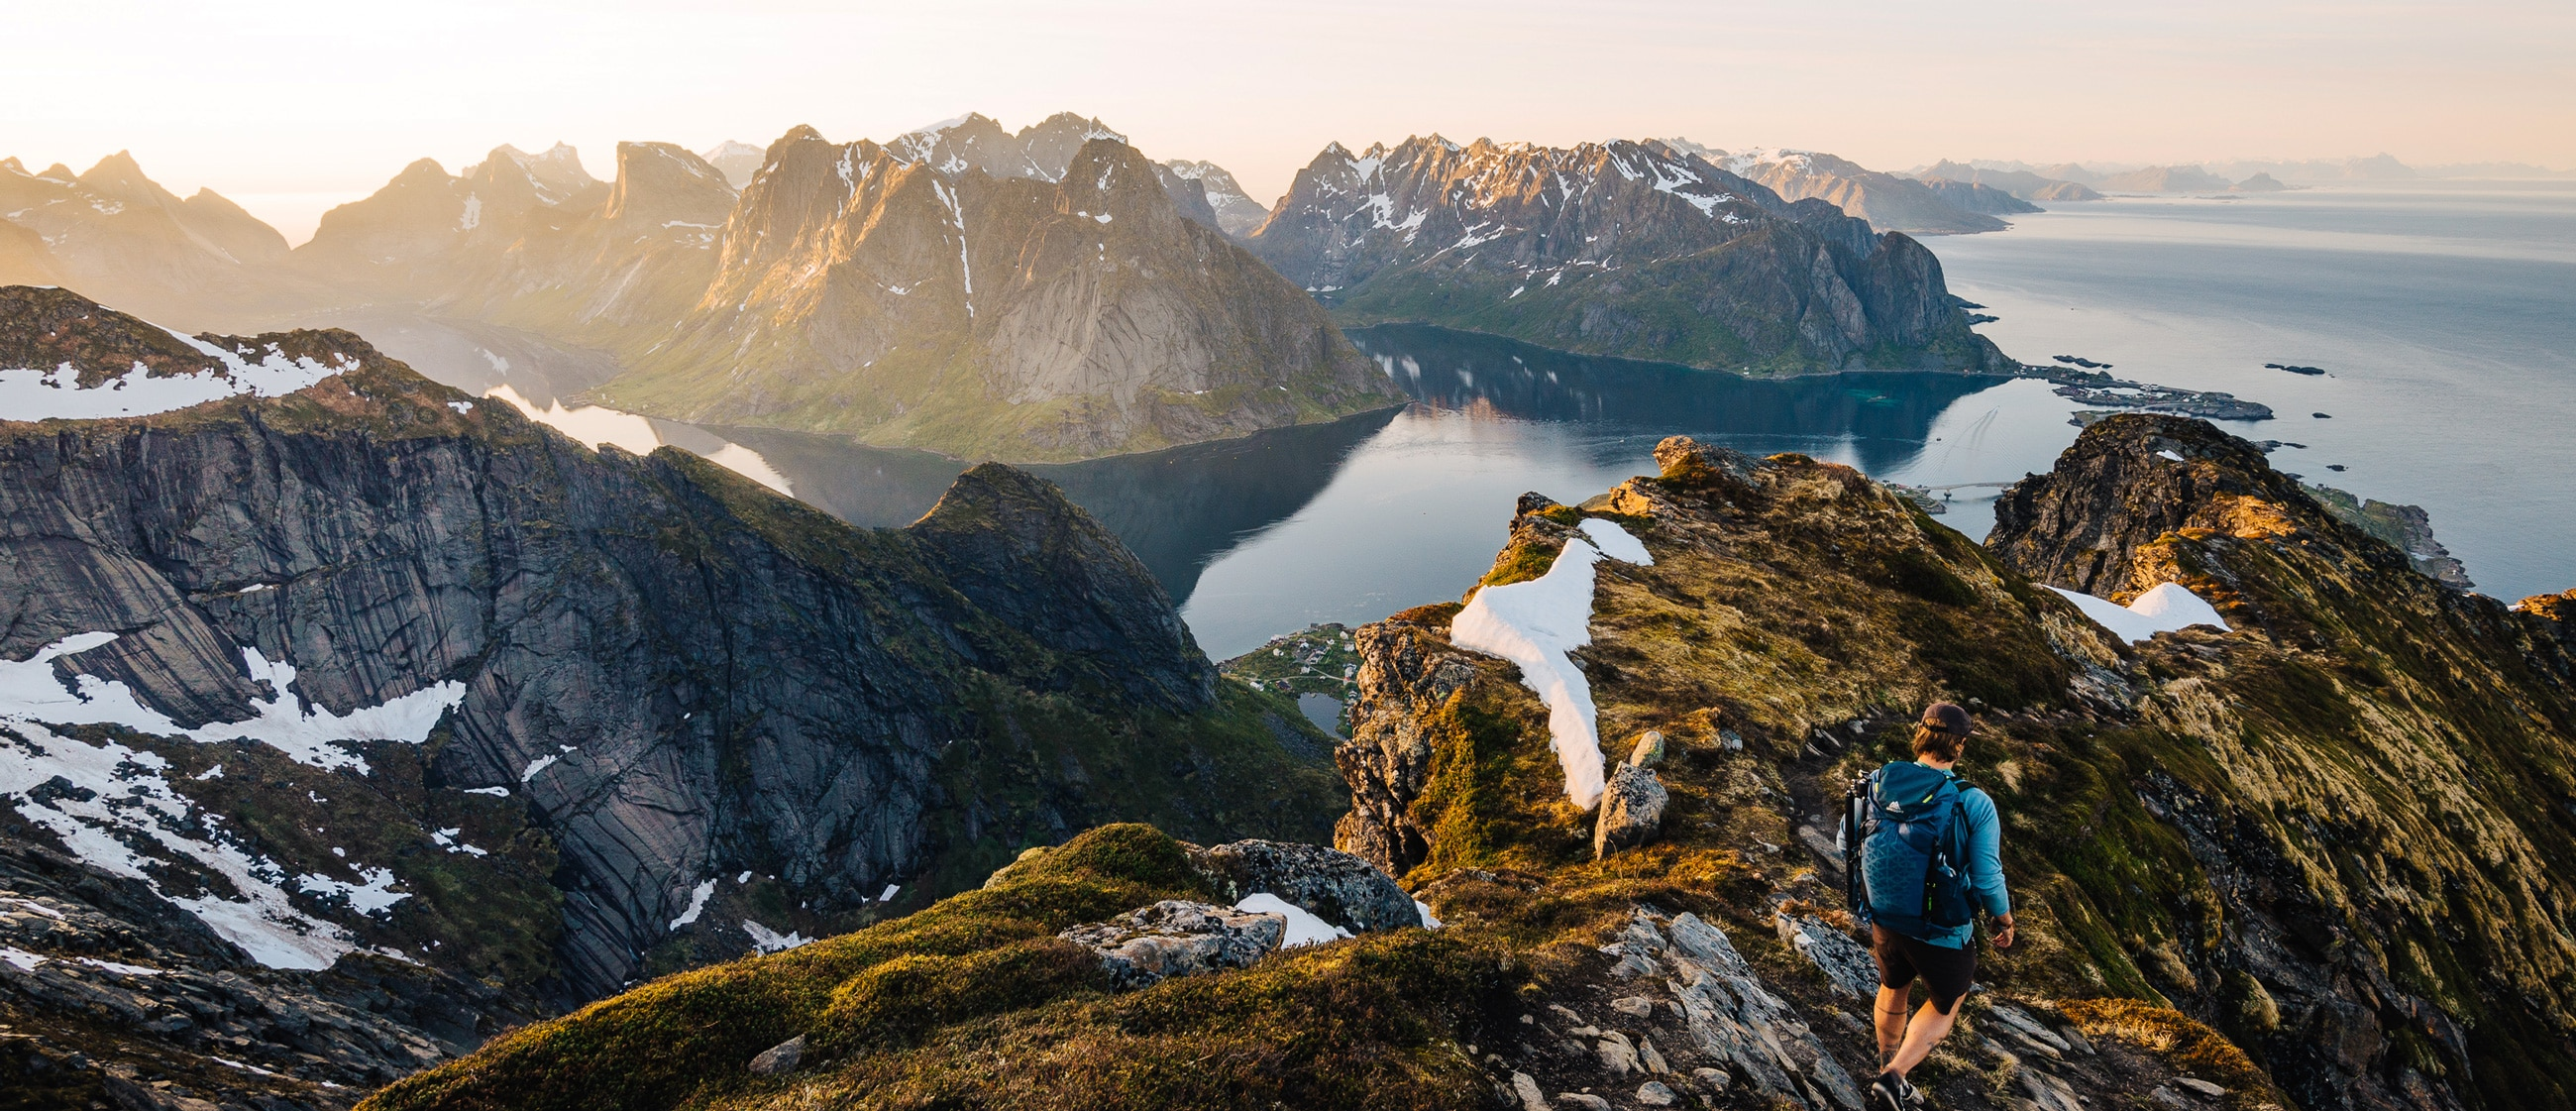 Exploring Norway: 5 Can't-Miss Hikes